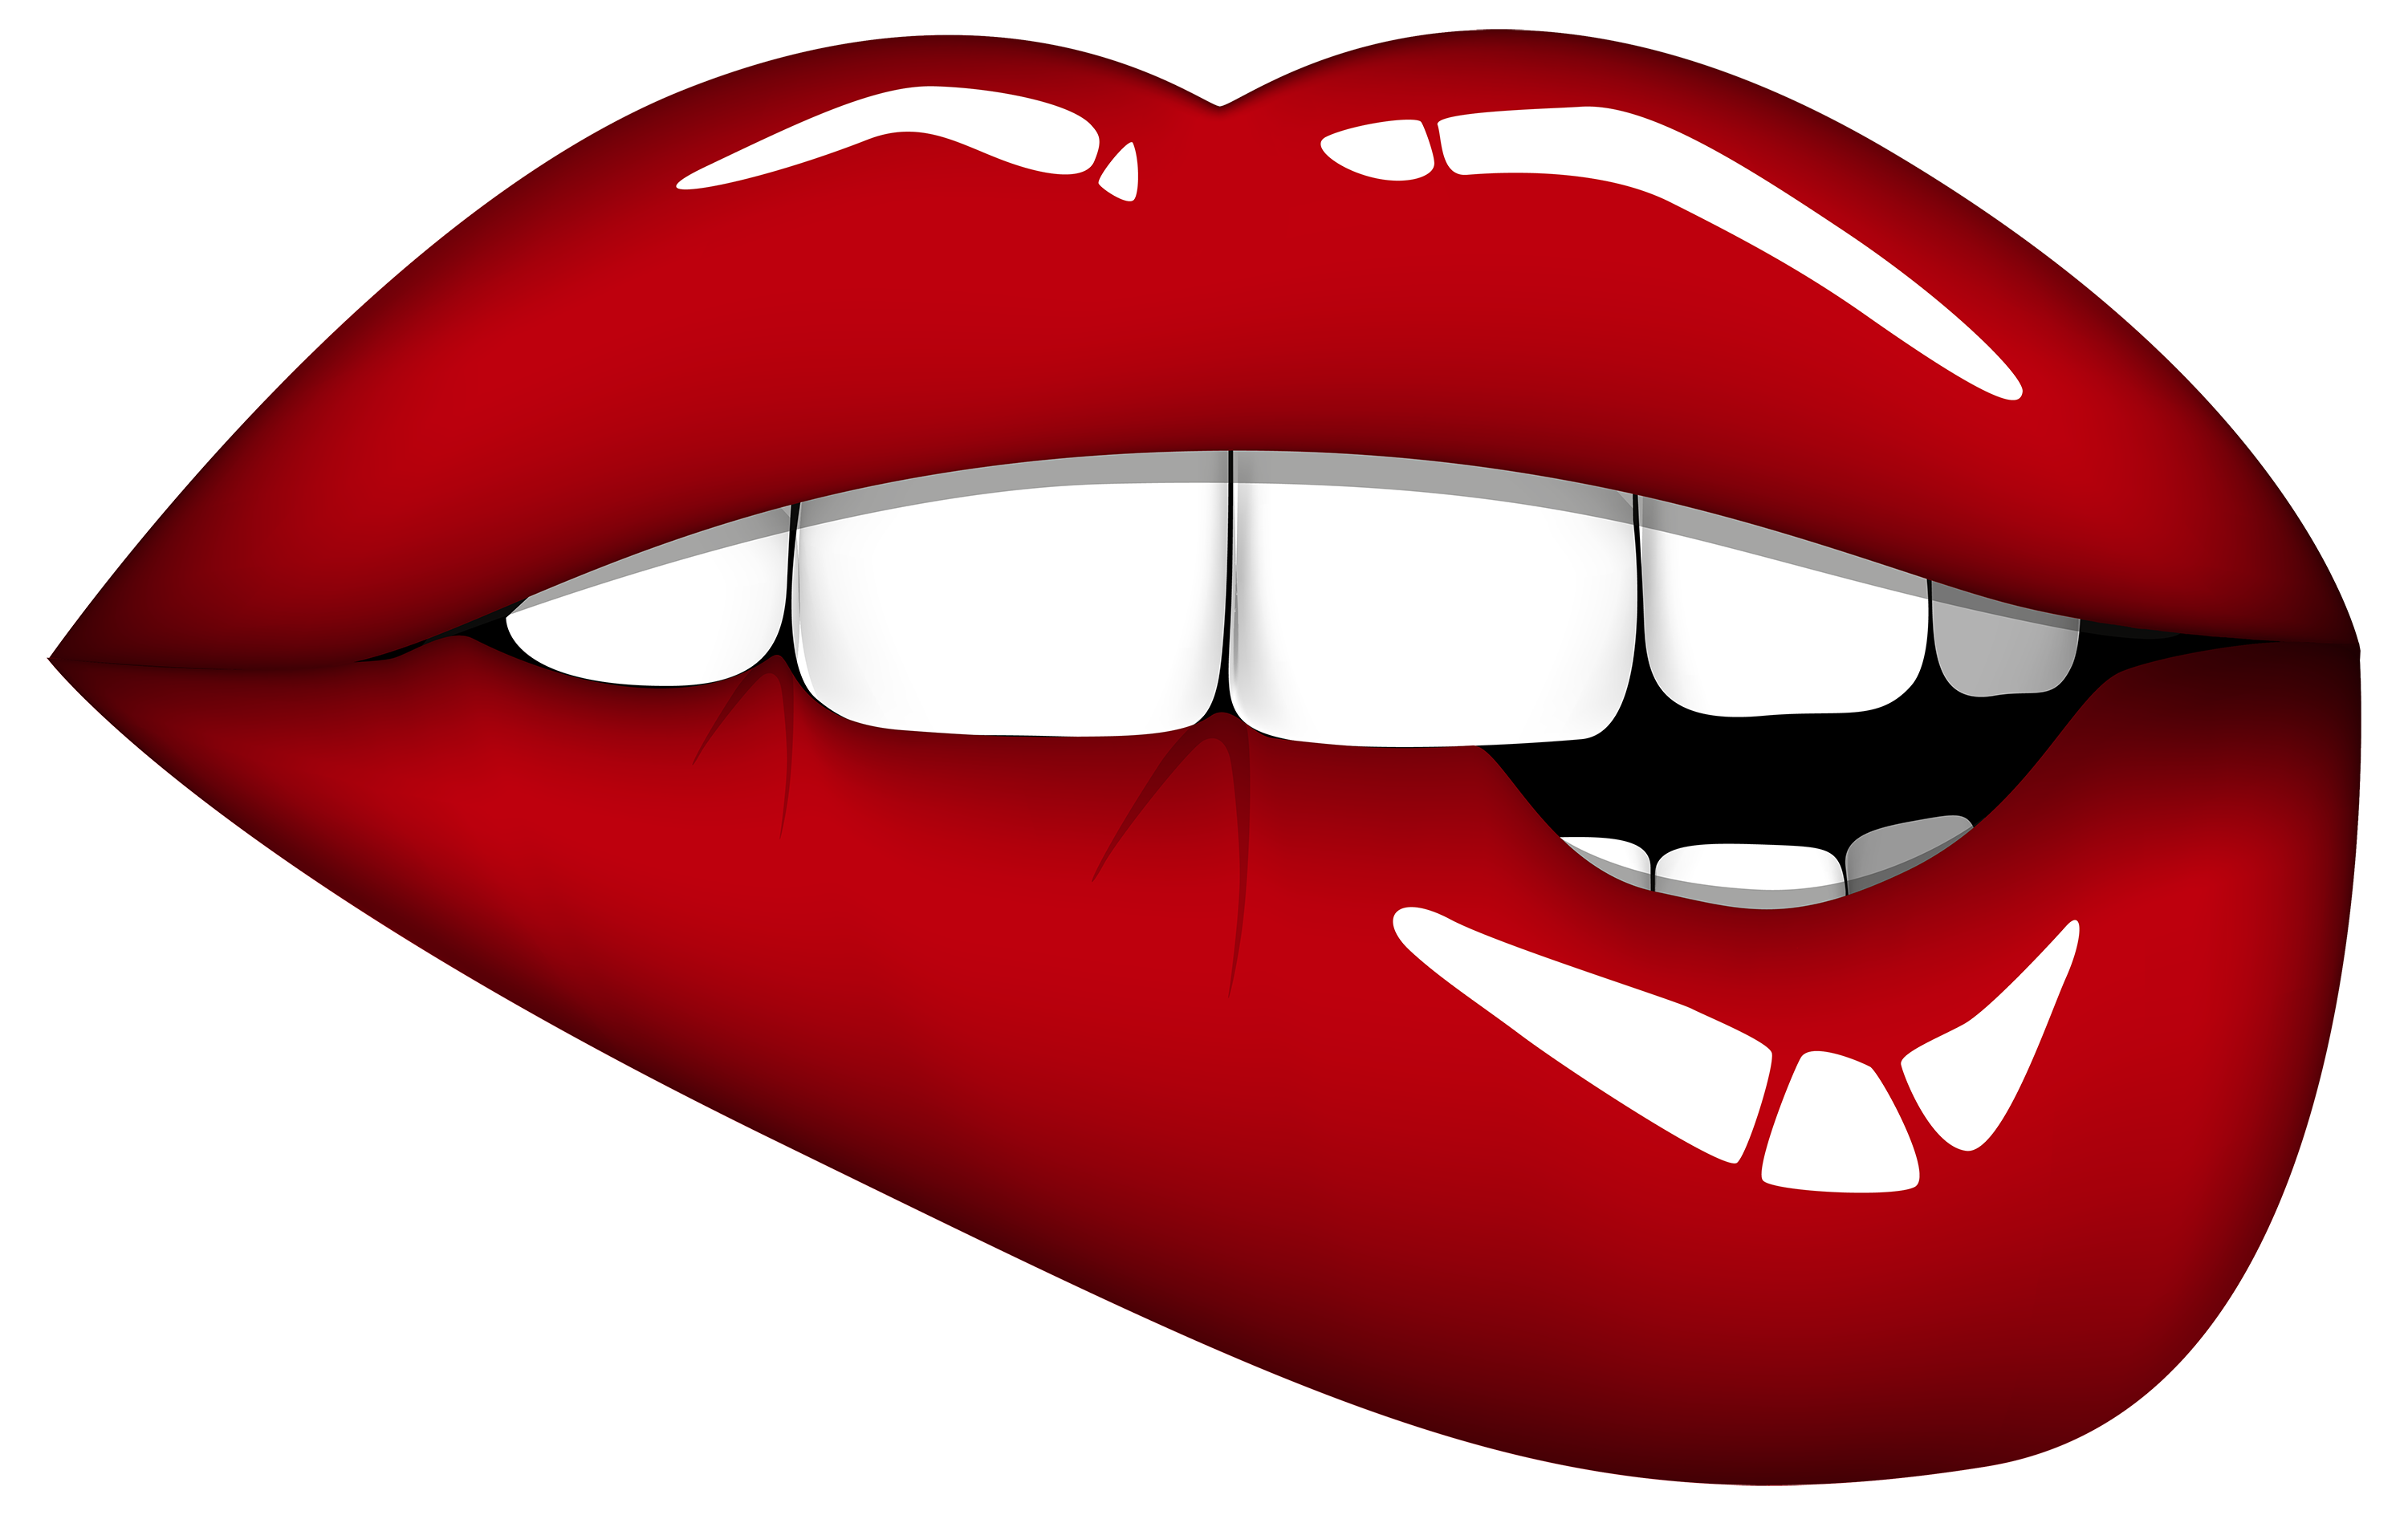 Lips the fish clipart jpg black and white download Red Mouth PNG Clipart Image - Best WEB Clipart jpg black and white download